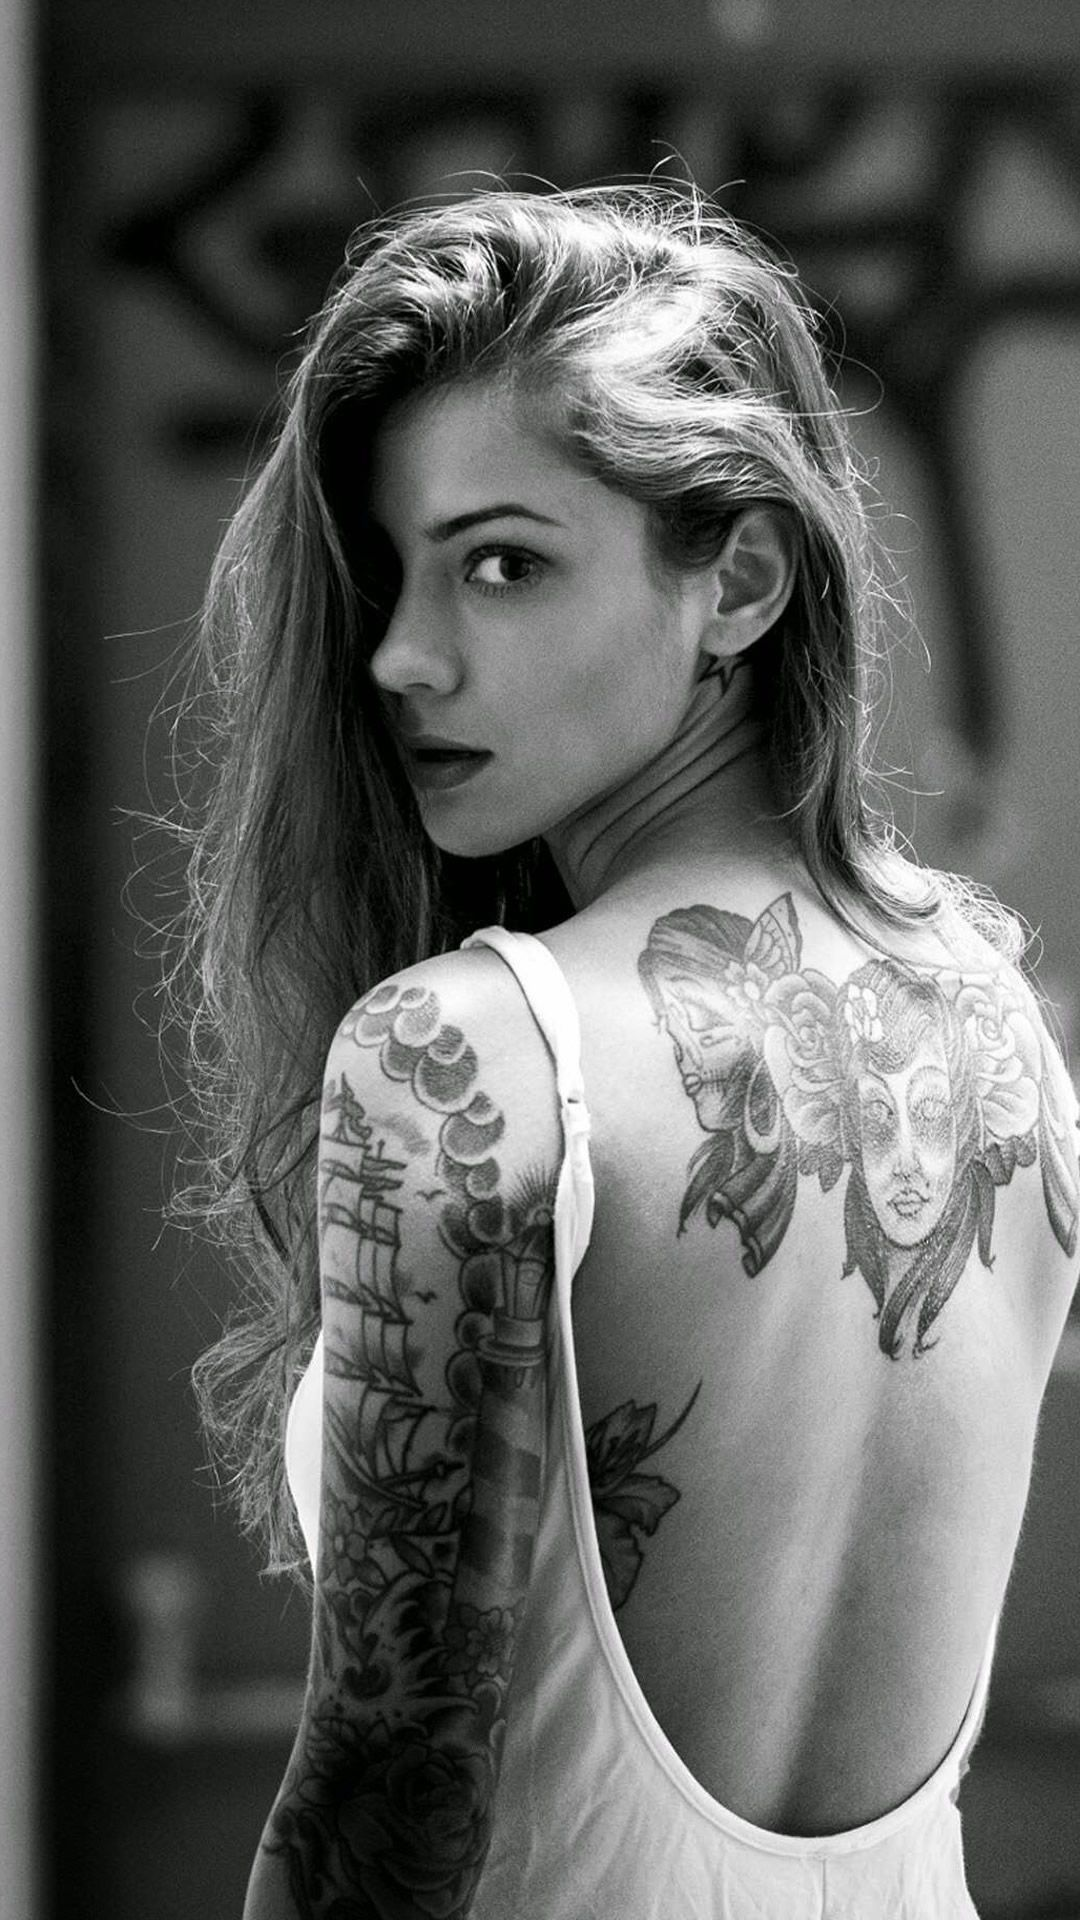 Female Tattoos, Sweet Hot Skull Tattoo Girl Wall